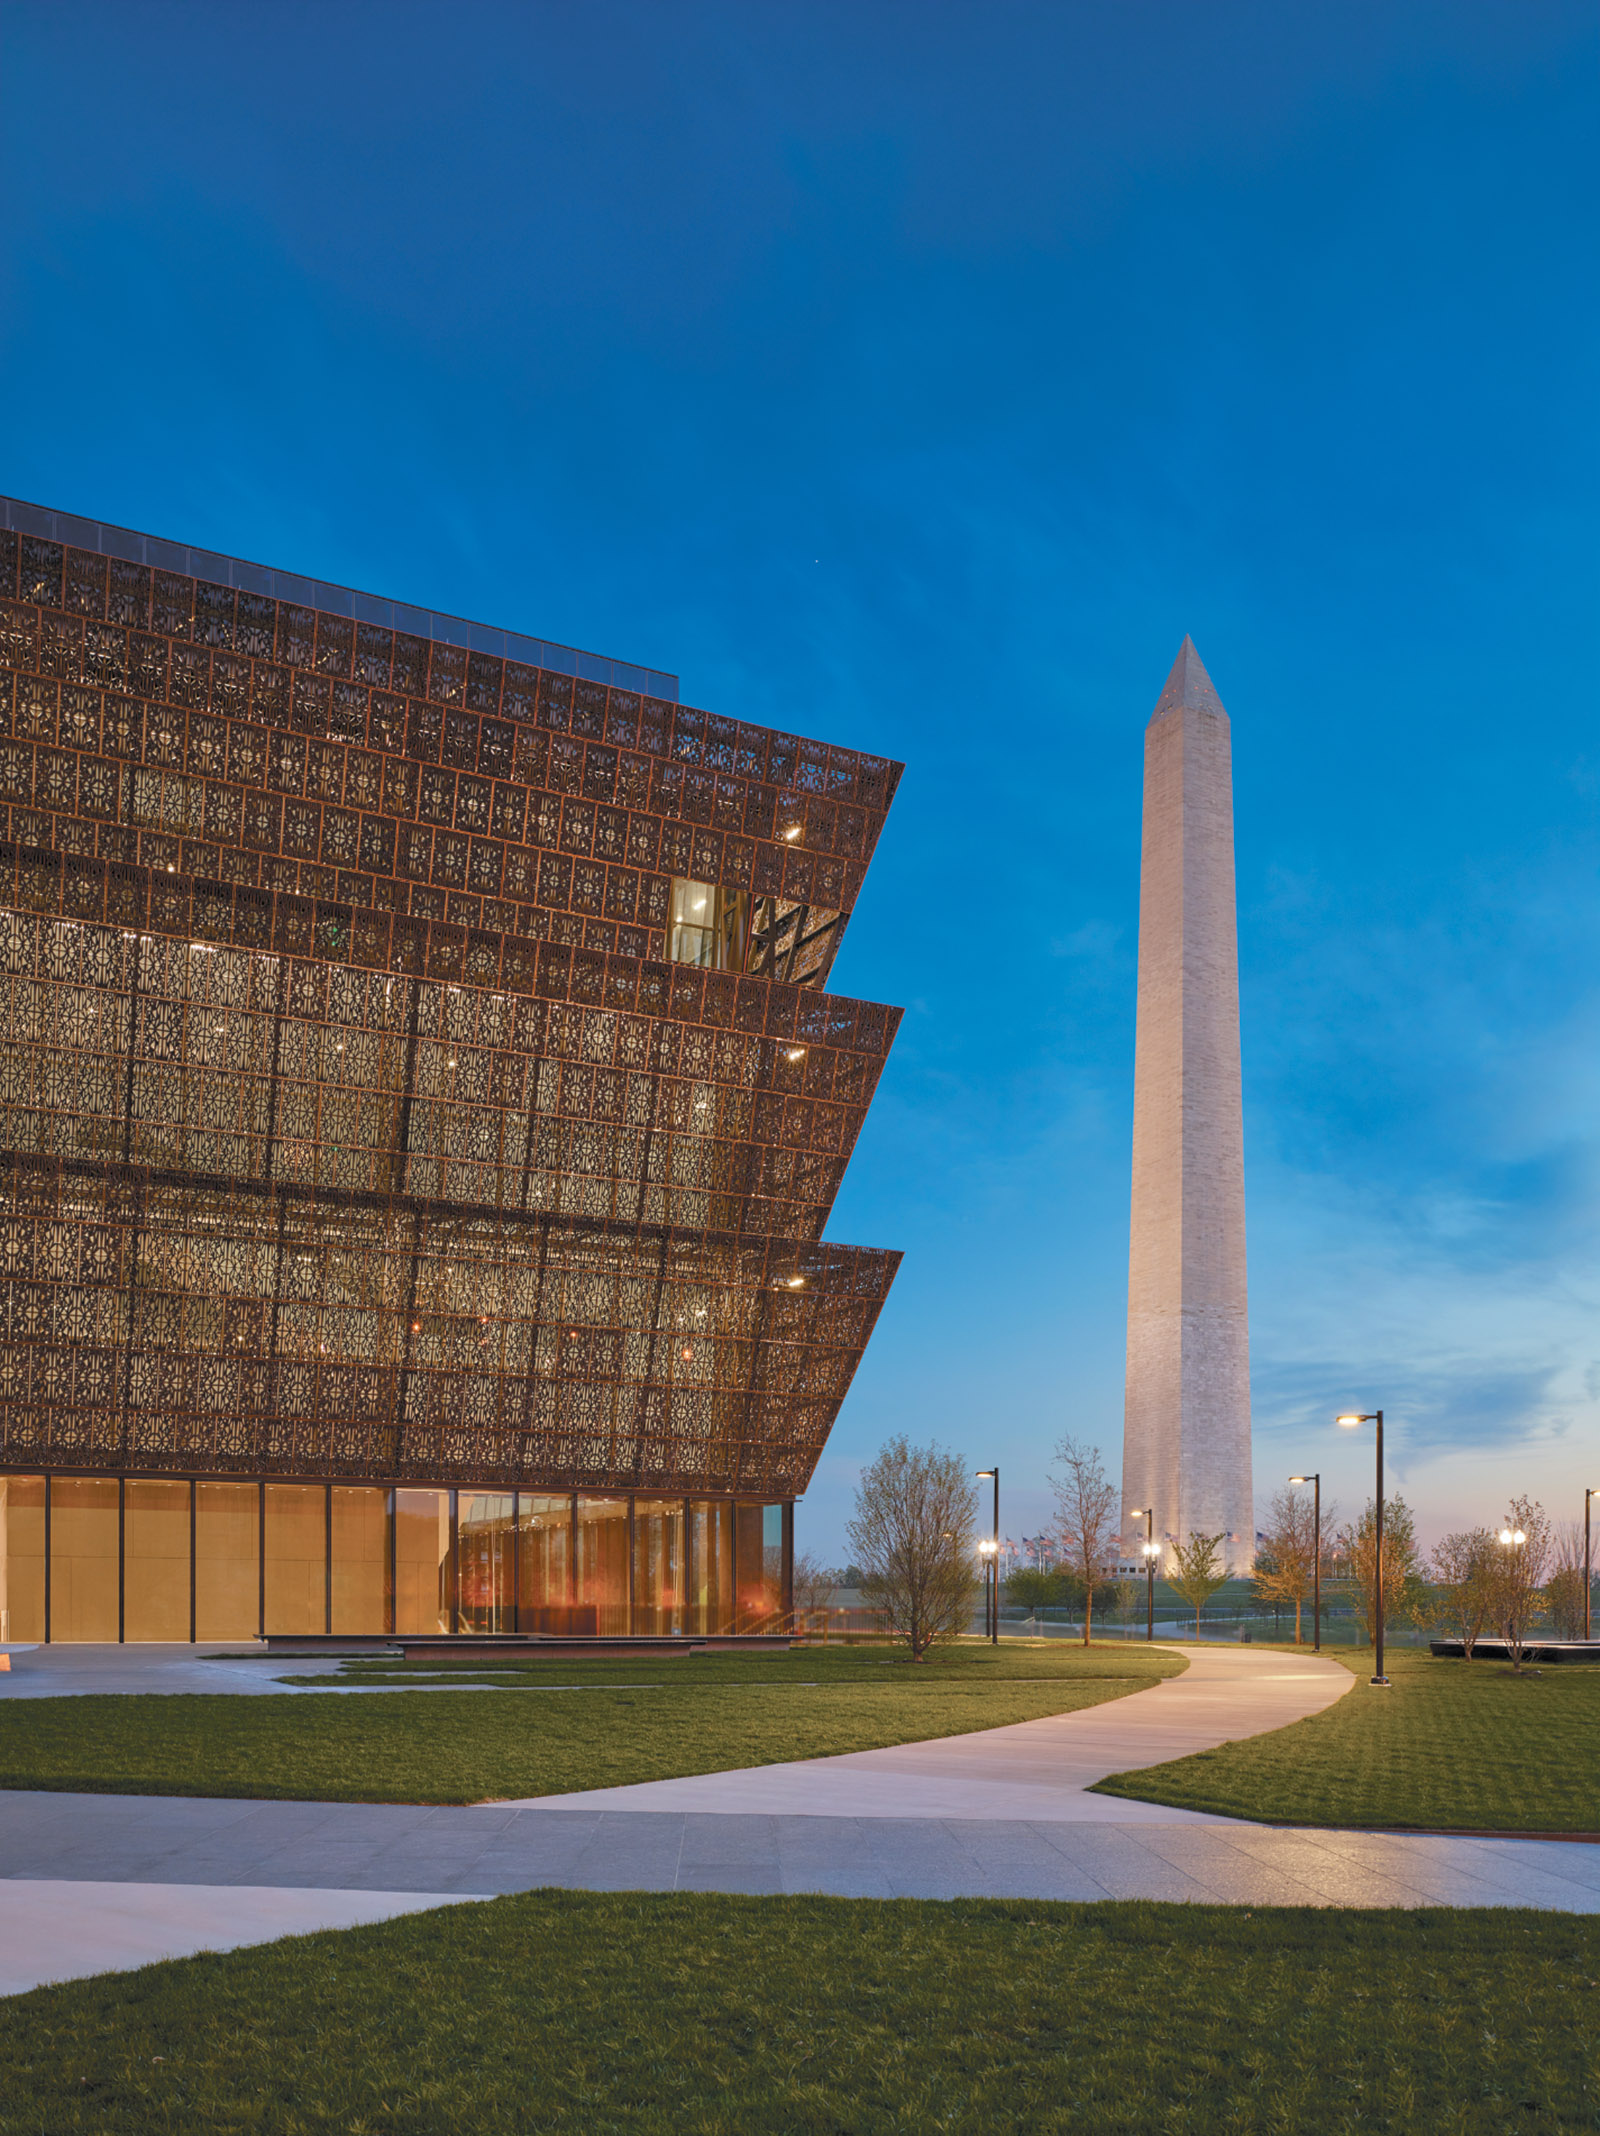 The Smithsonian's National Museum of African American History and Culture, which opened on the National Mall in Washington, D.C., in September 2016